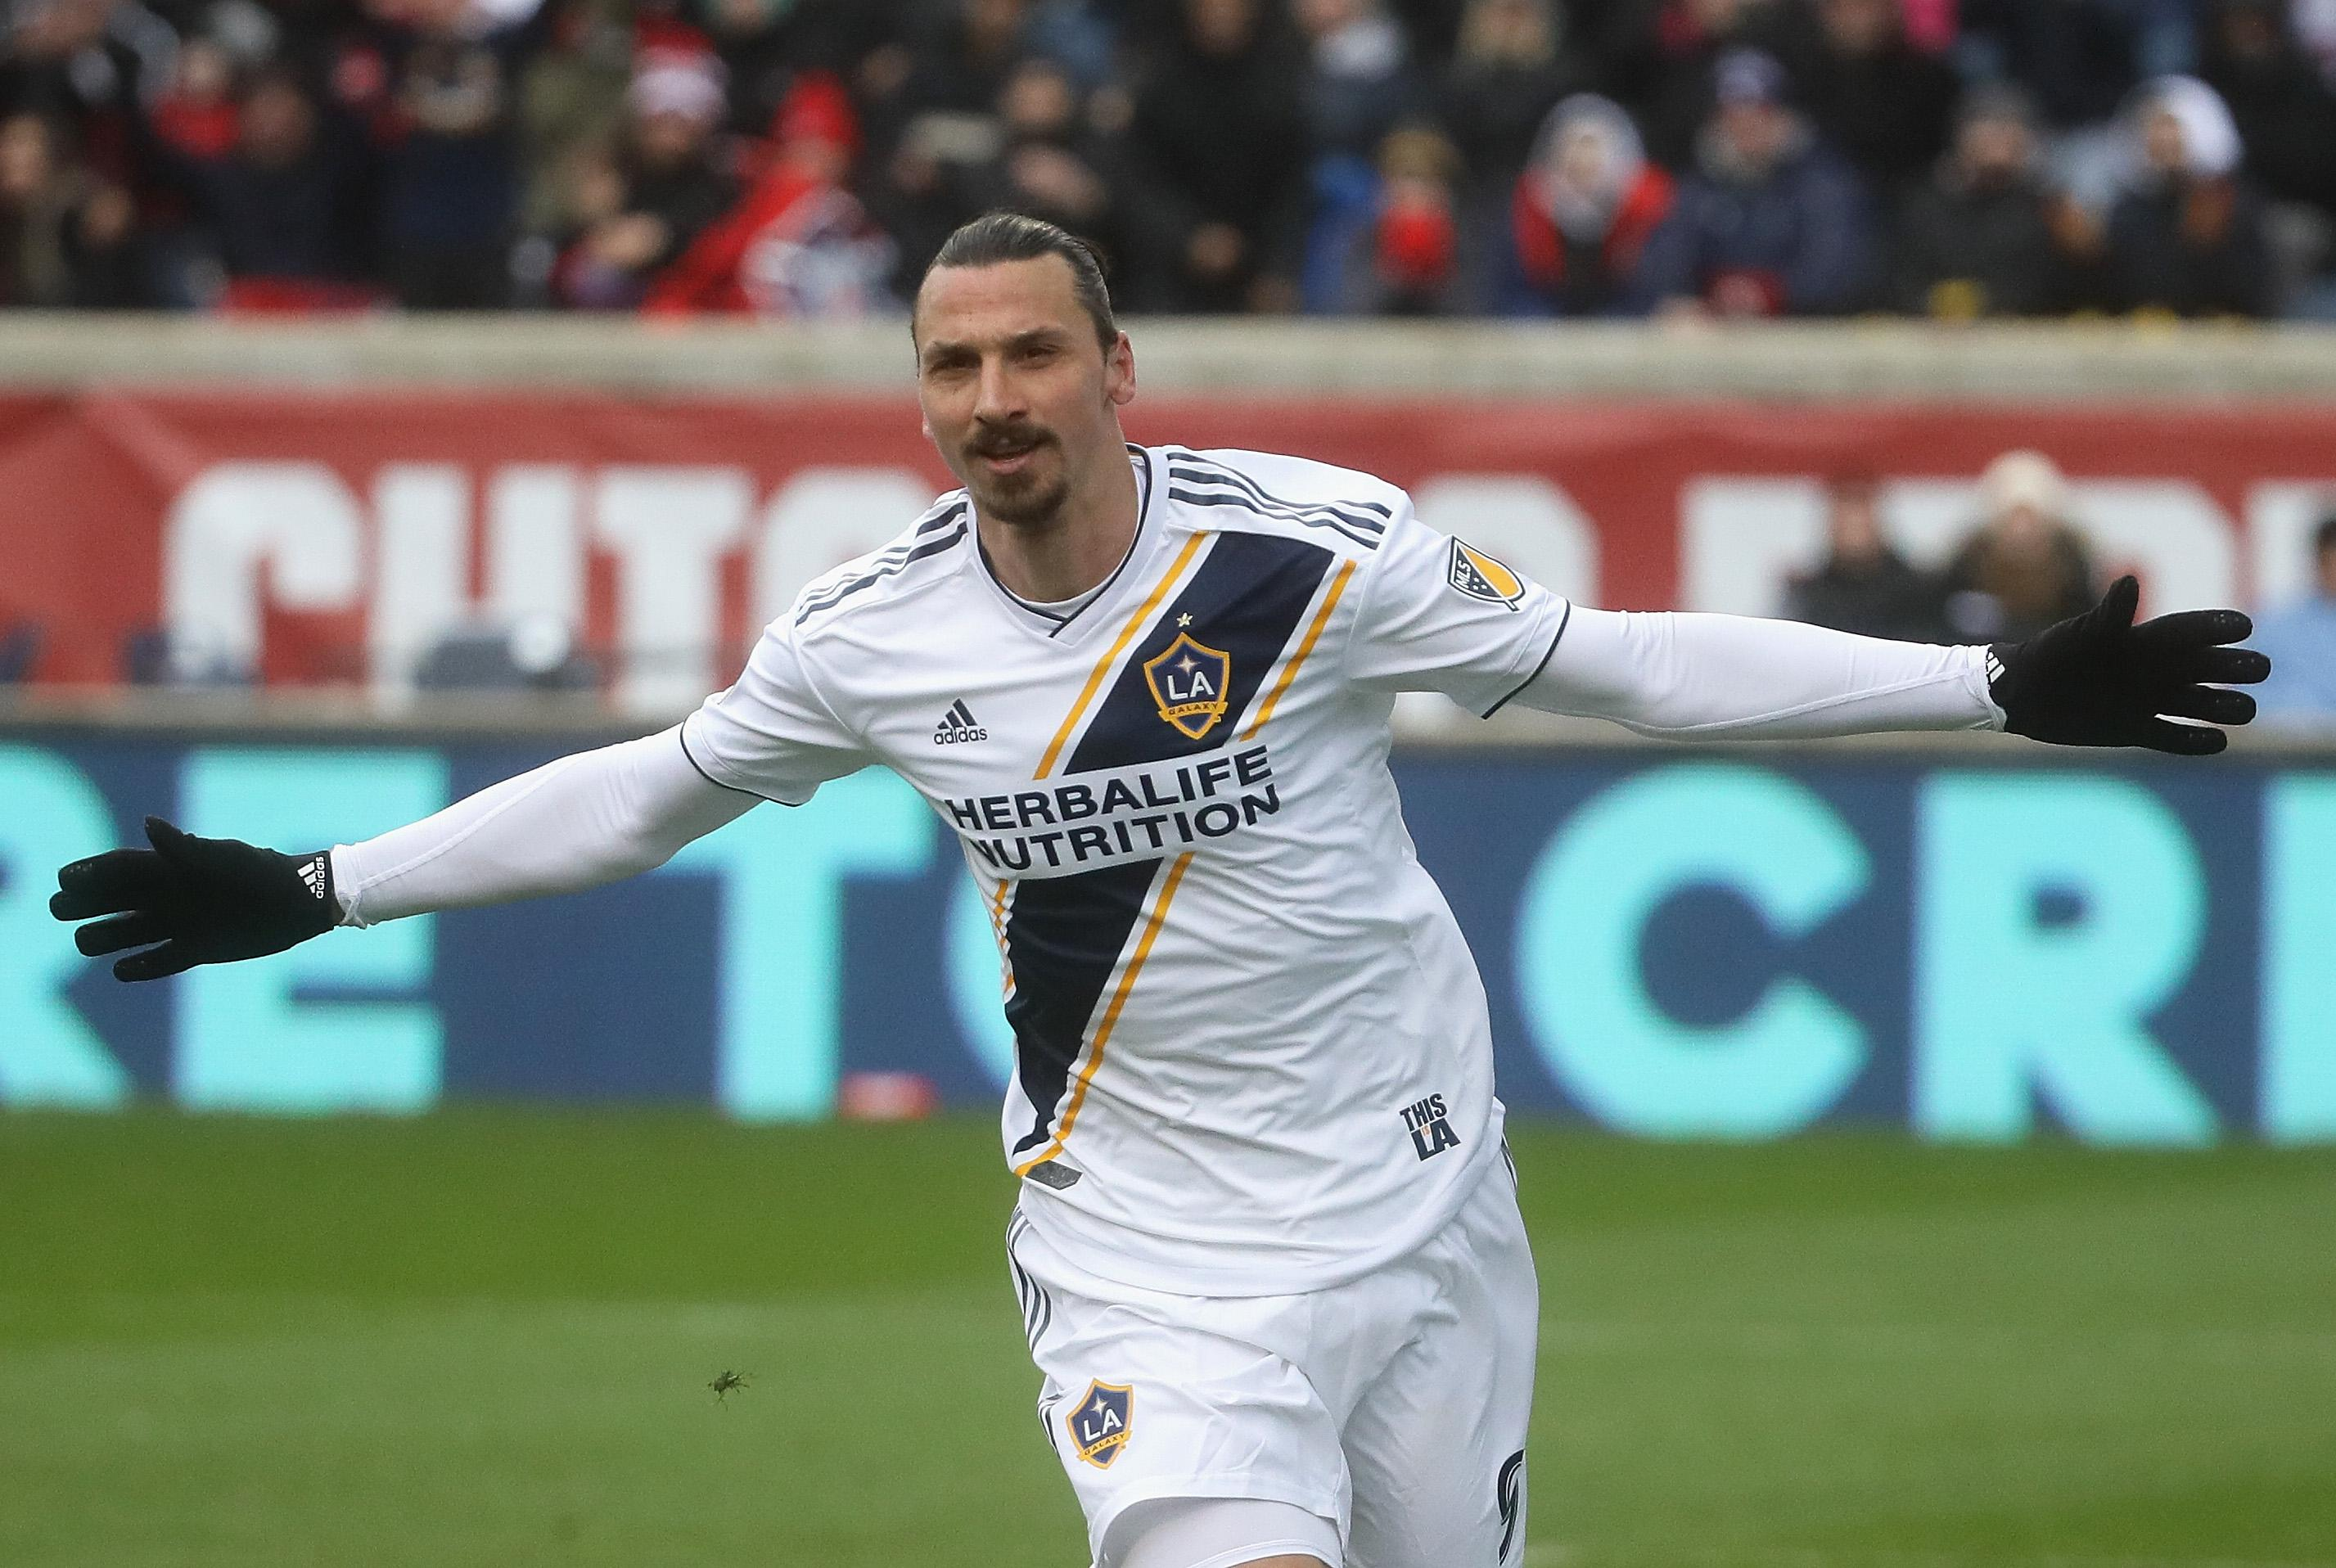 Ibrahimovic will not play at the World Cup, says Swedish FA